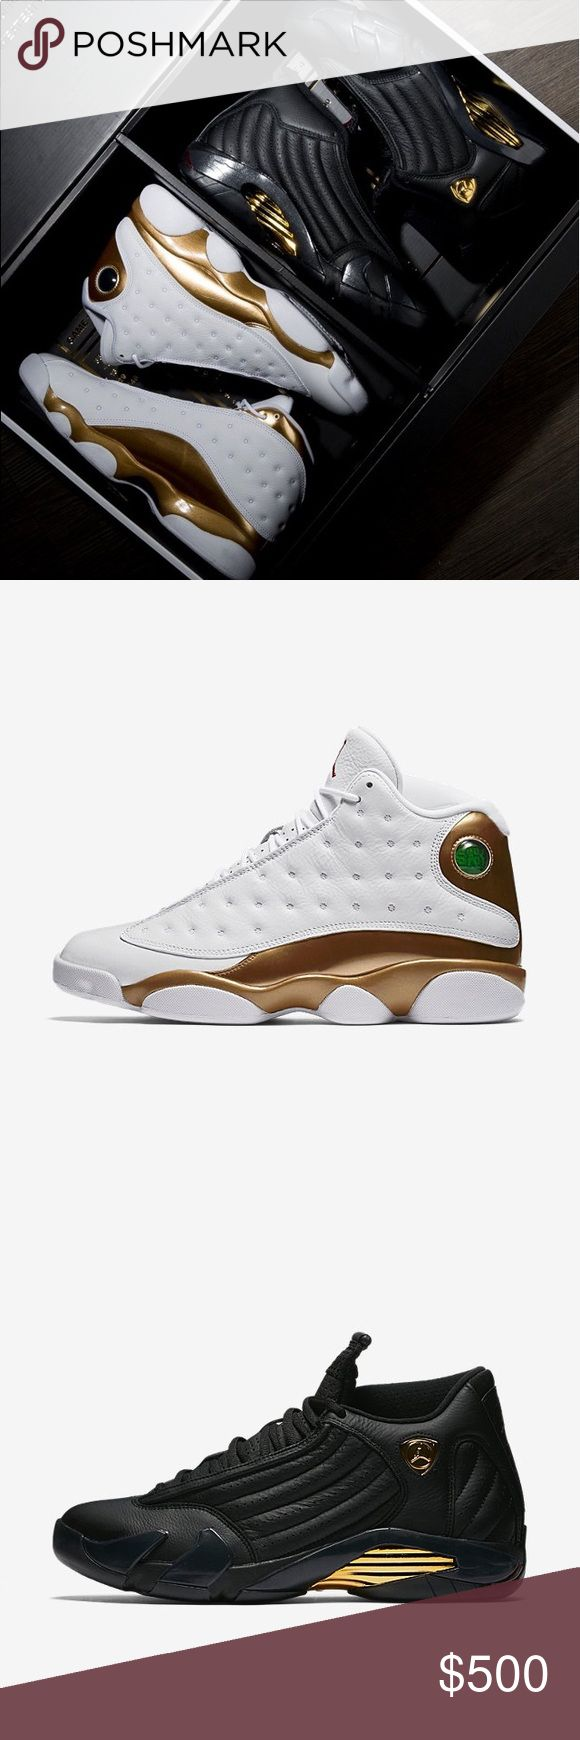 New Air Jordan XIII/XIV DMP Men's Shoe Pack Dead stock Jordan pack, includes one Jordan 13 and one Jordan 14 Jordan Shoes Sneakers